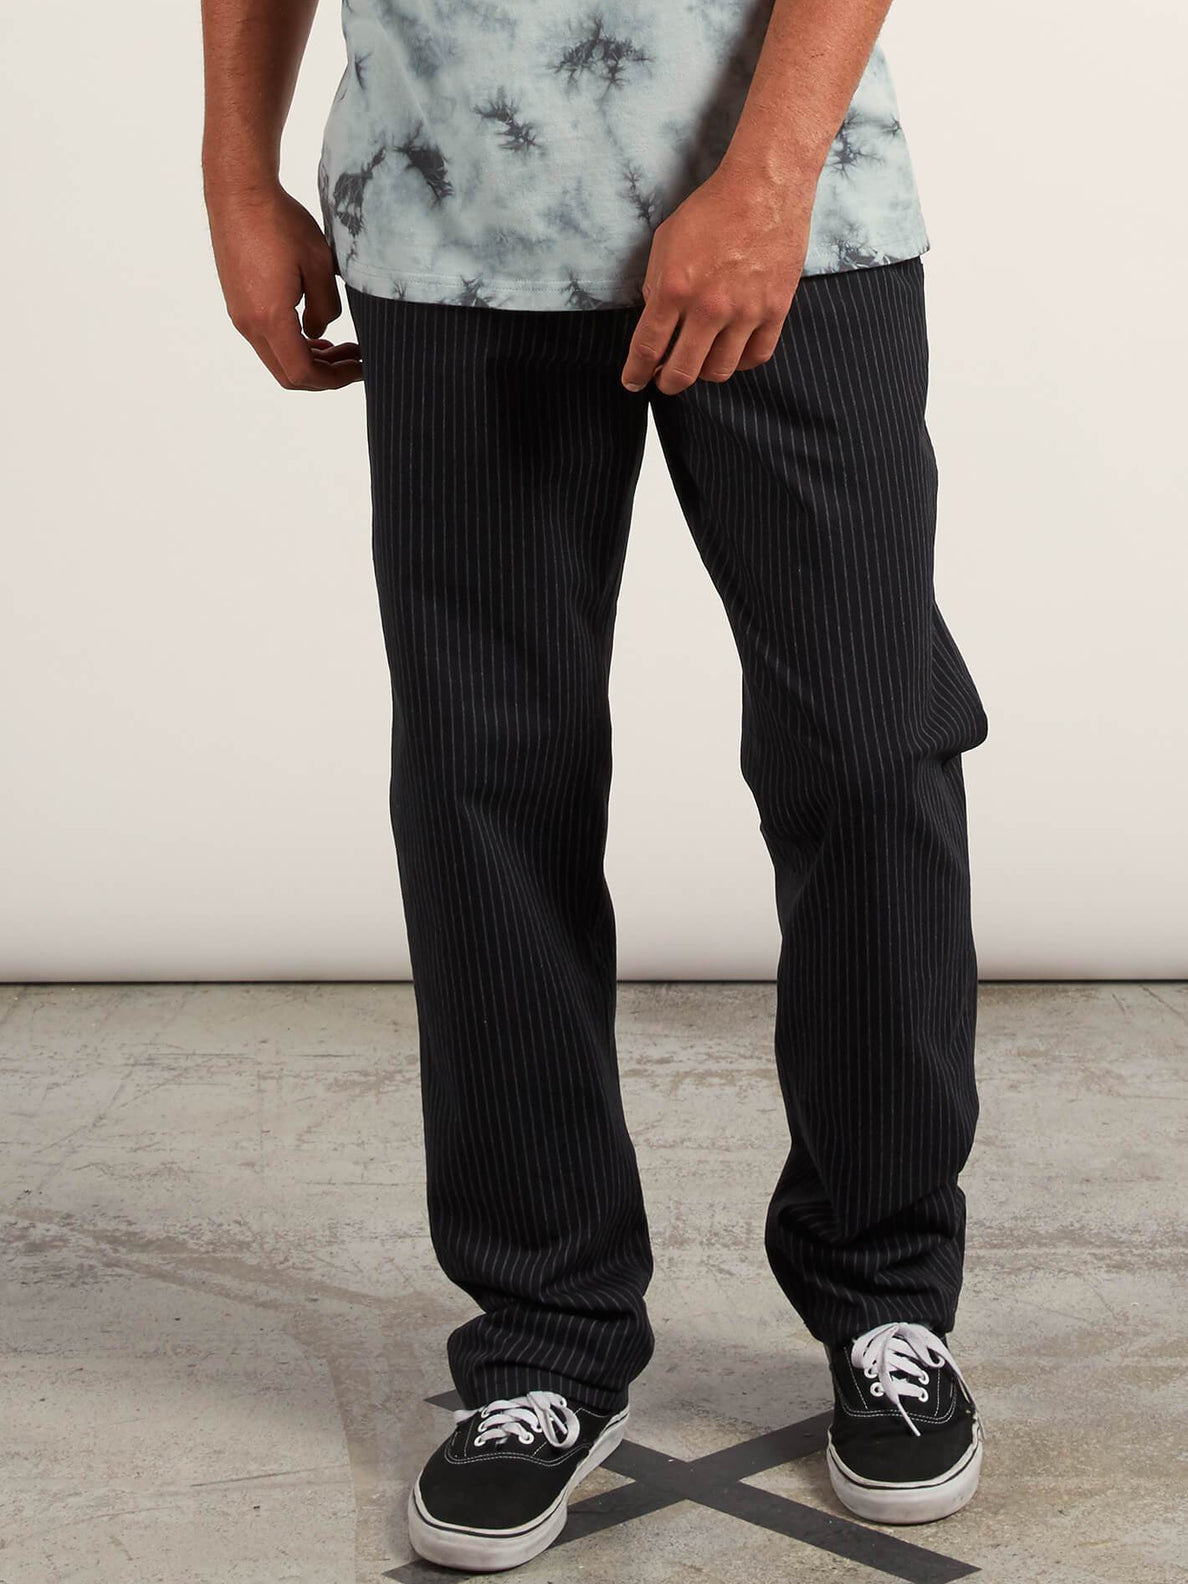 Noa Noise Chino Pants In Black, Front View